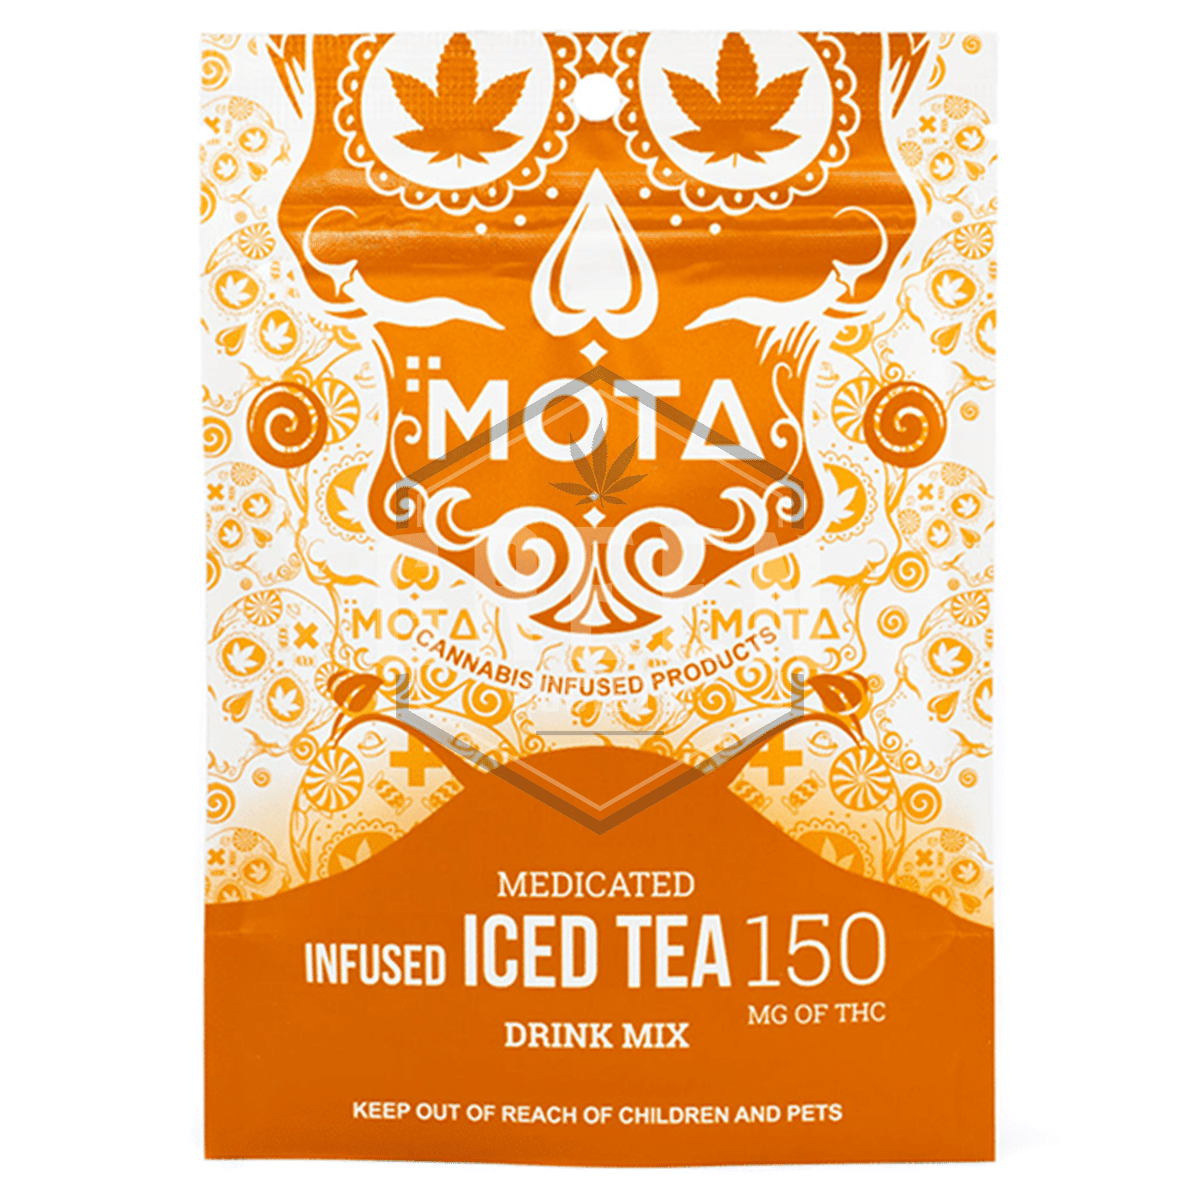 Iced Tea by MOTA Cannabis by Green Society - Image © 2018 Green Society. All Rights Reserved.